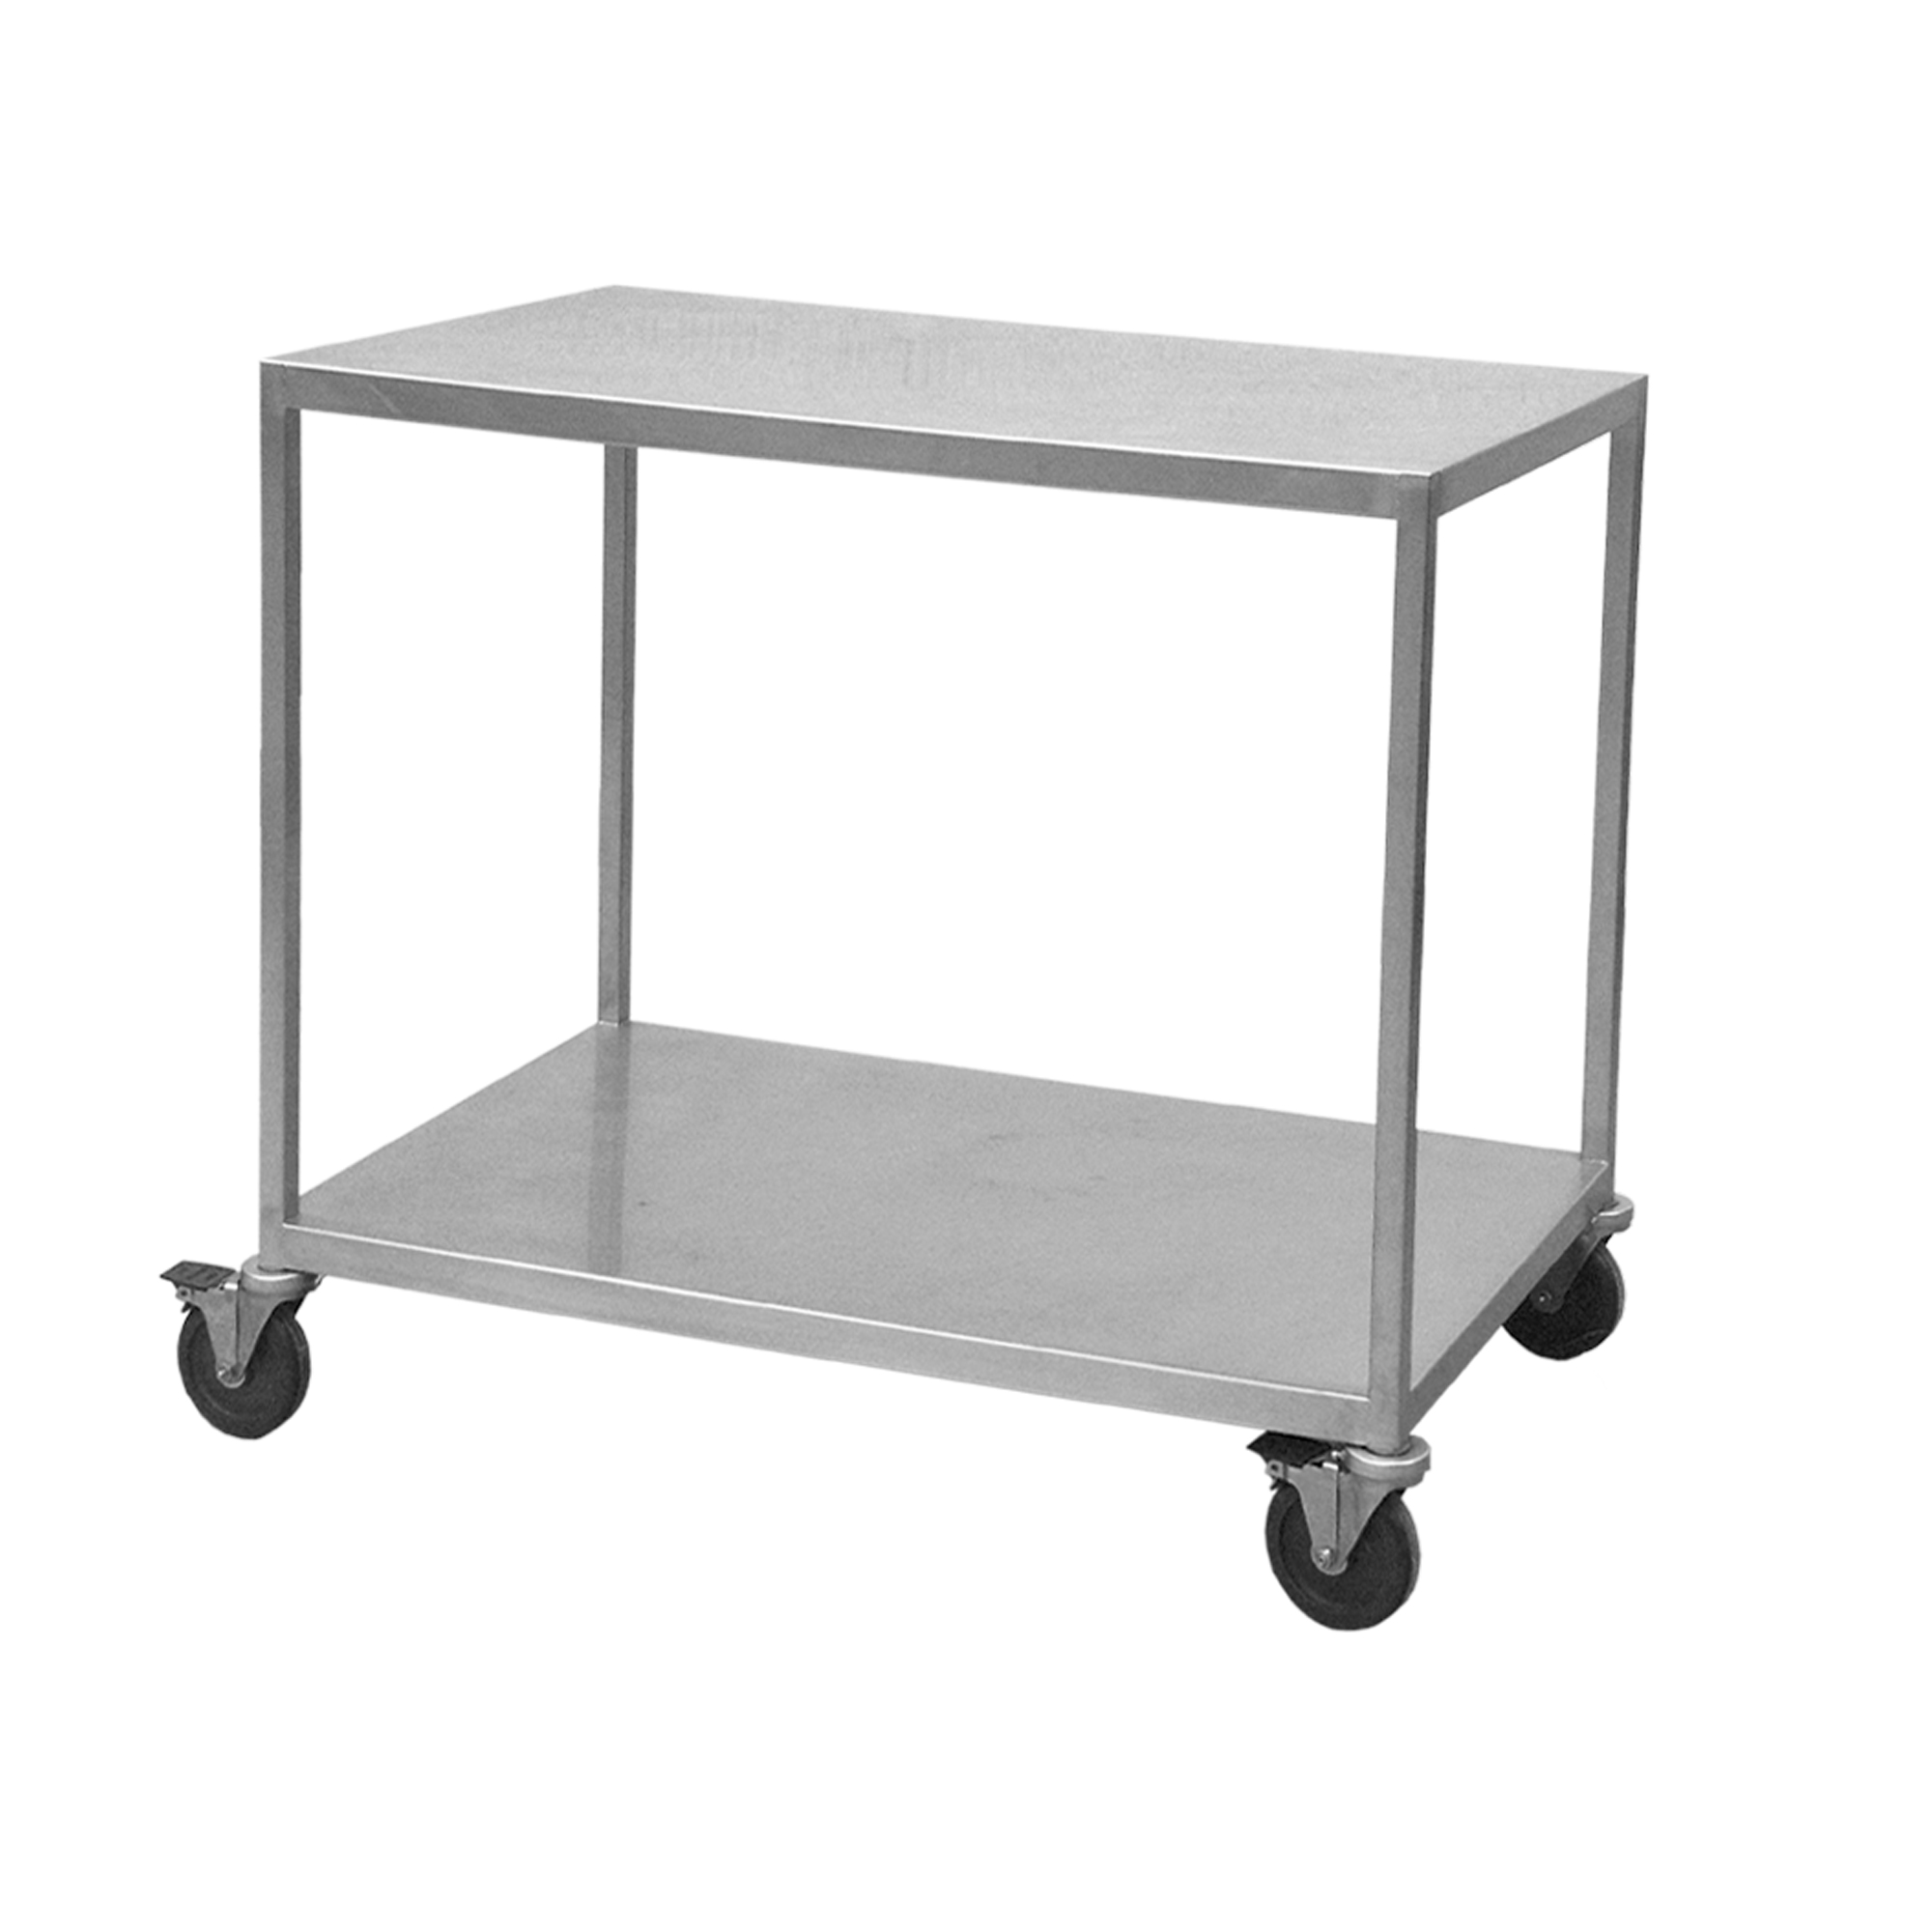 Factory Utility Cart: Alternative Design Manufacturing